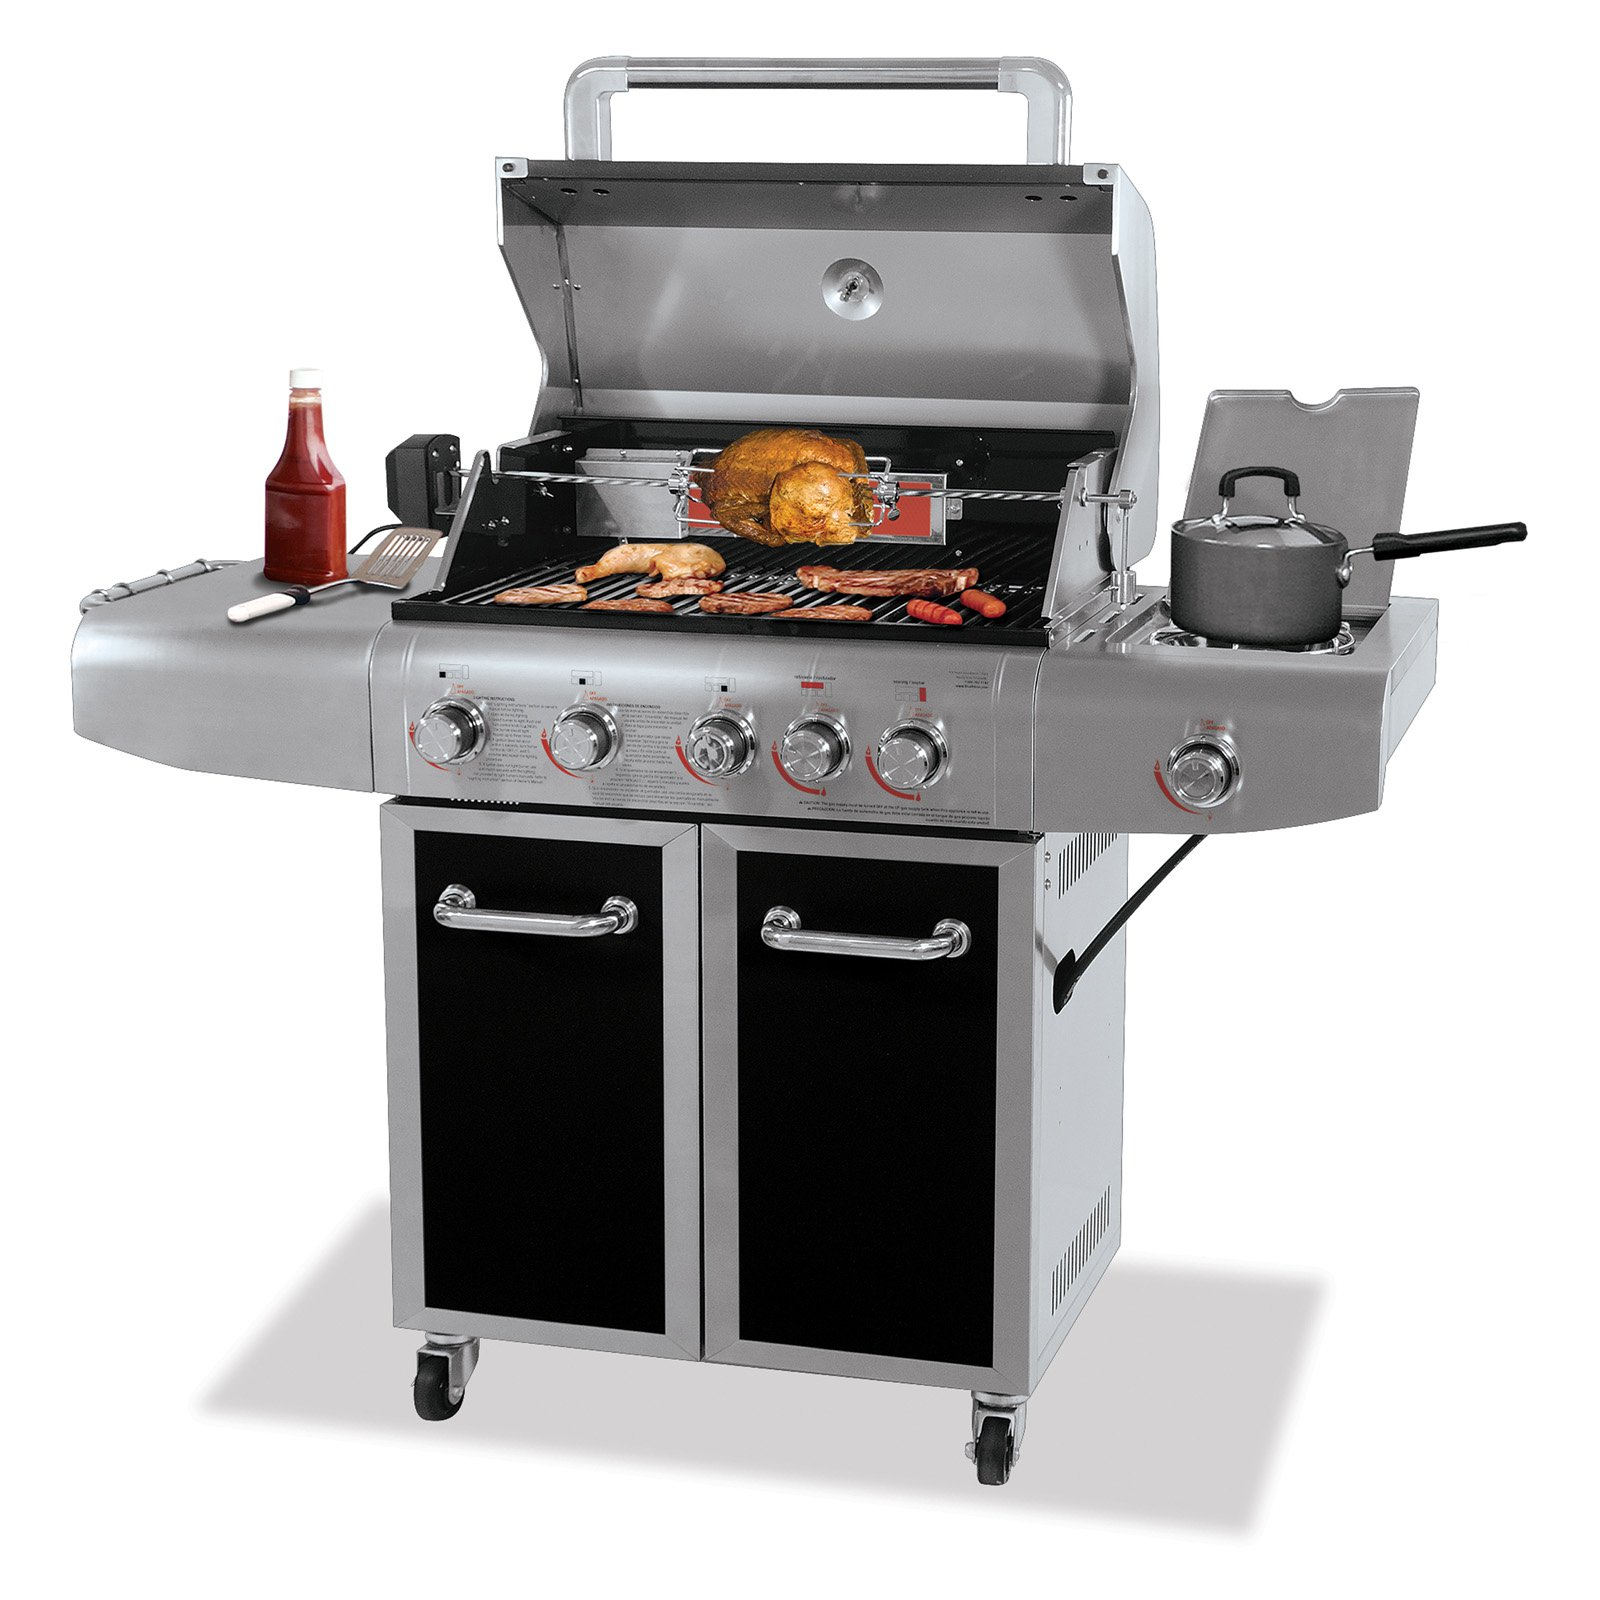 Uniflame GBC1273SP 3-Burner Gas Grill